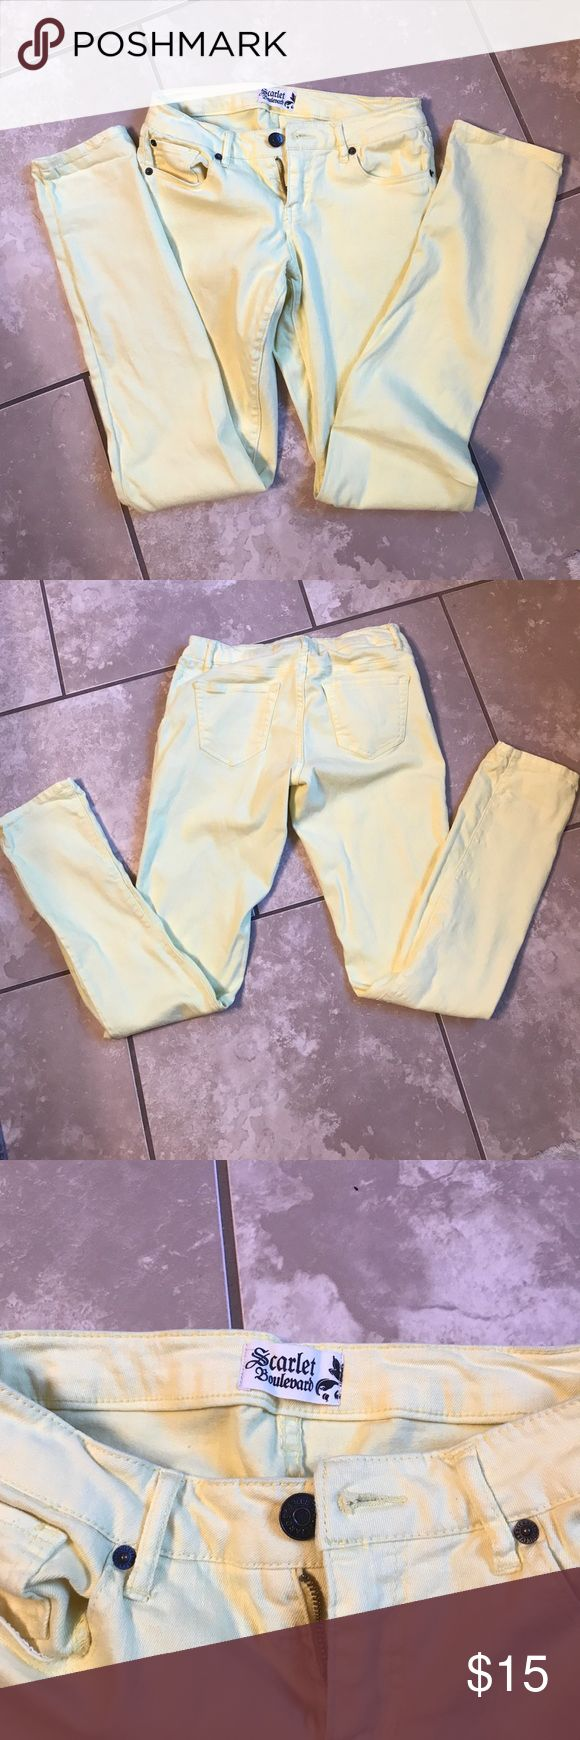 Bright Yellow Scarlett Boulevard Skinny Jeans Bright yellow (not neon) Scarlett boulevard skinny jeans no damages size 26 BKE tagged for hits BKE Pants Skinny